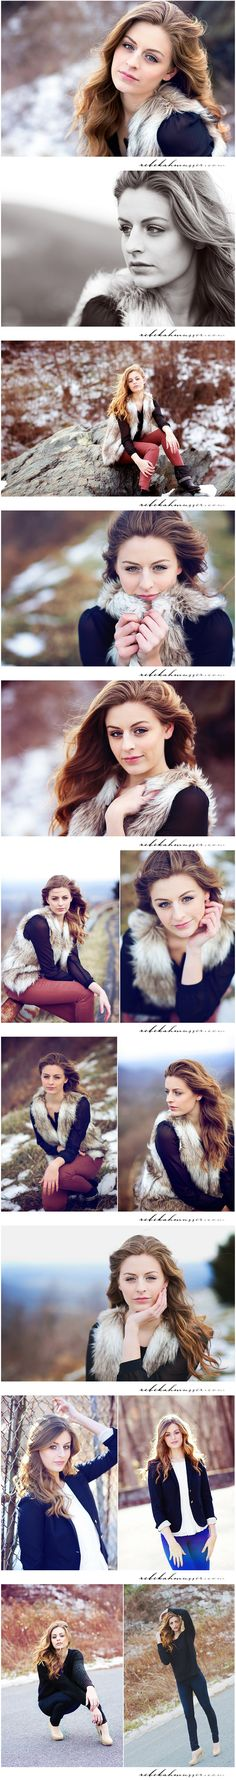 New Photography Winter Poses Portrait Photographers Ideas